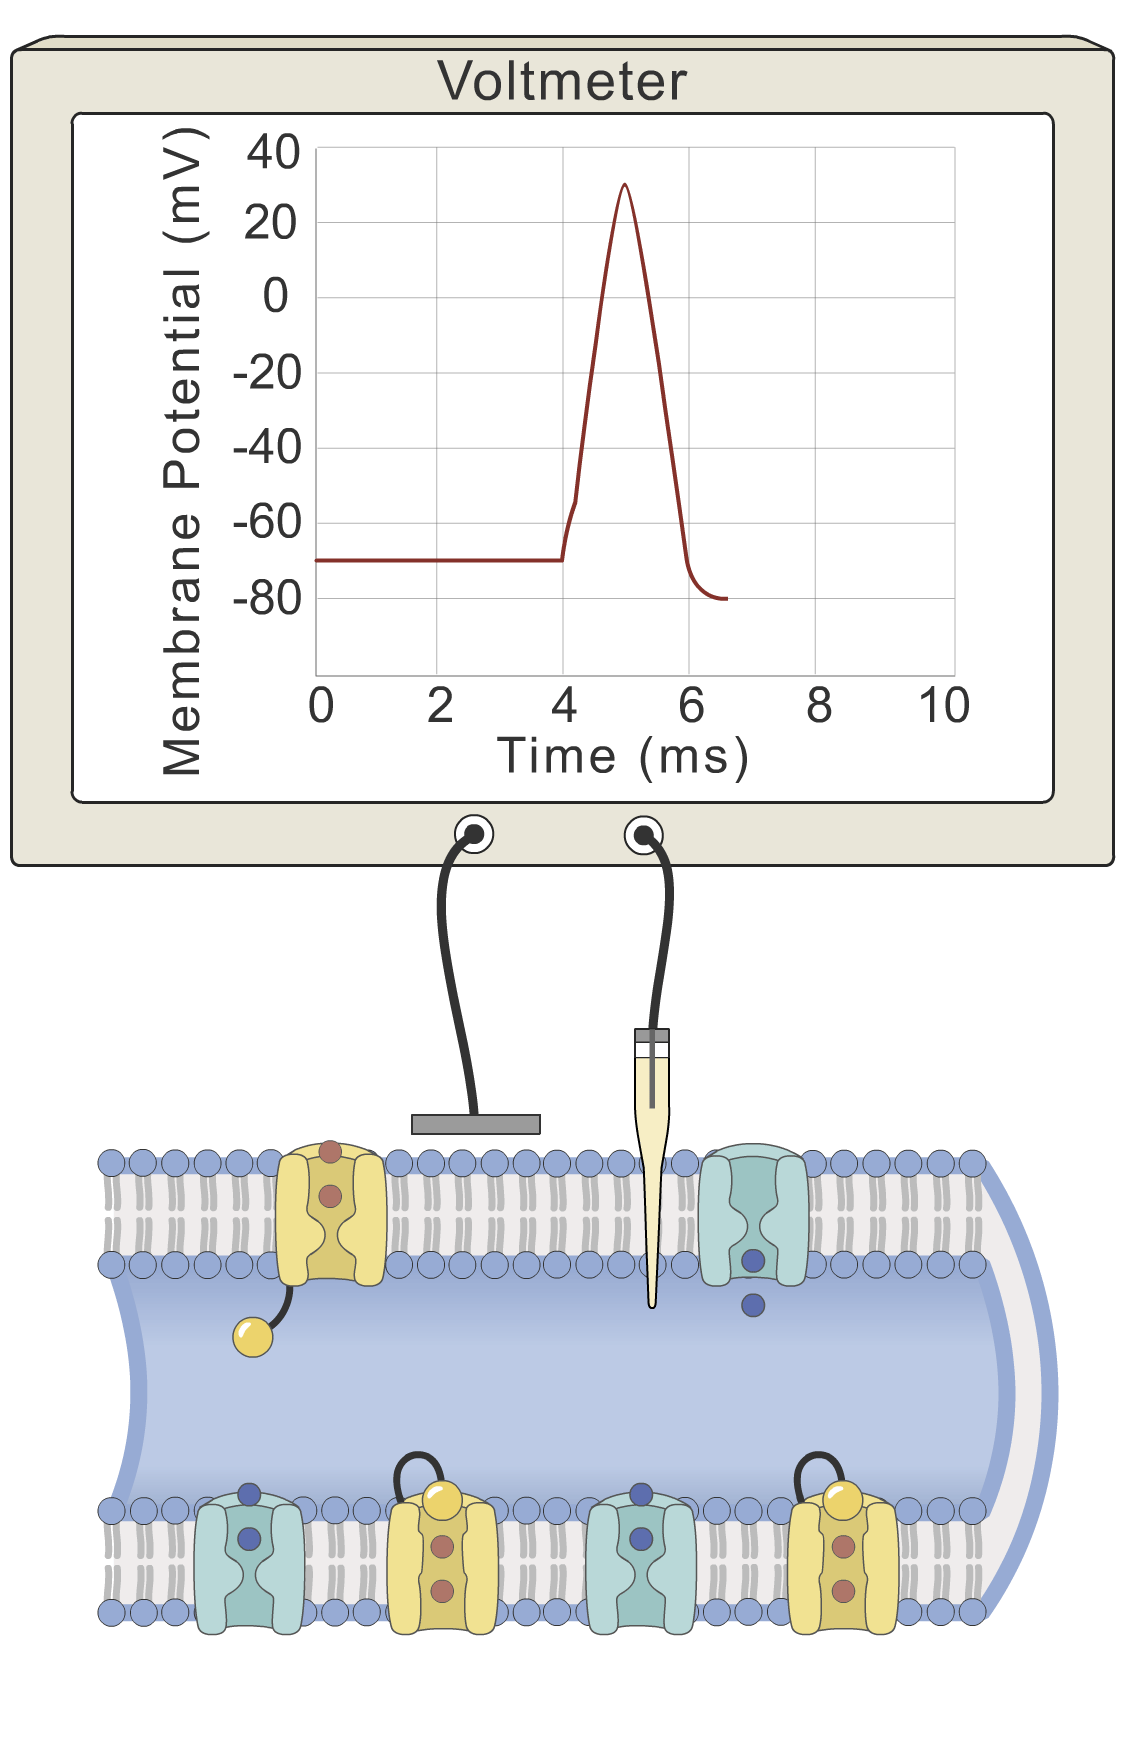 Action potential: hyperpolarization phase